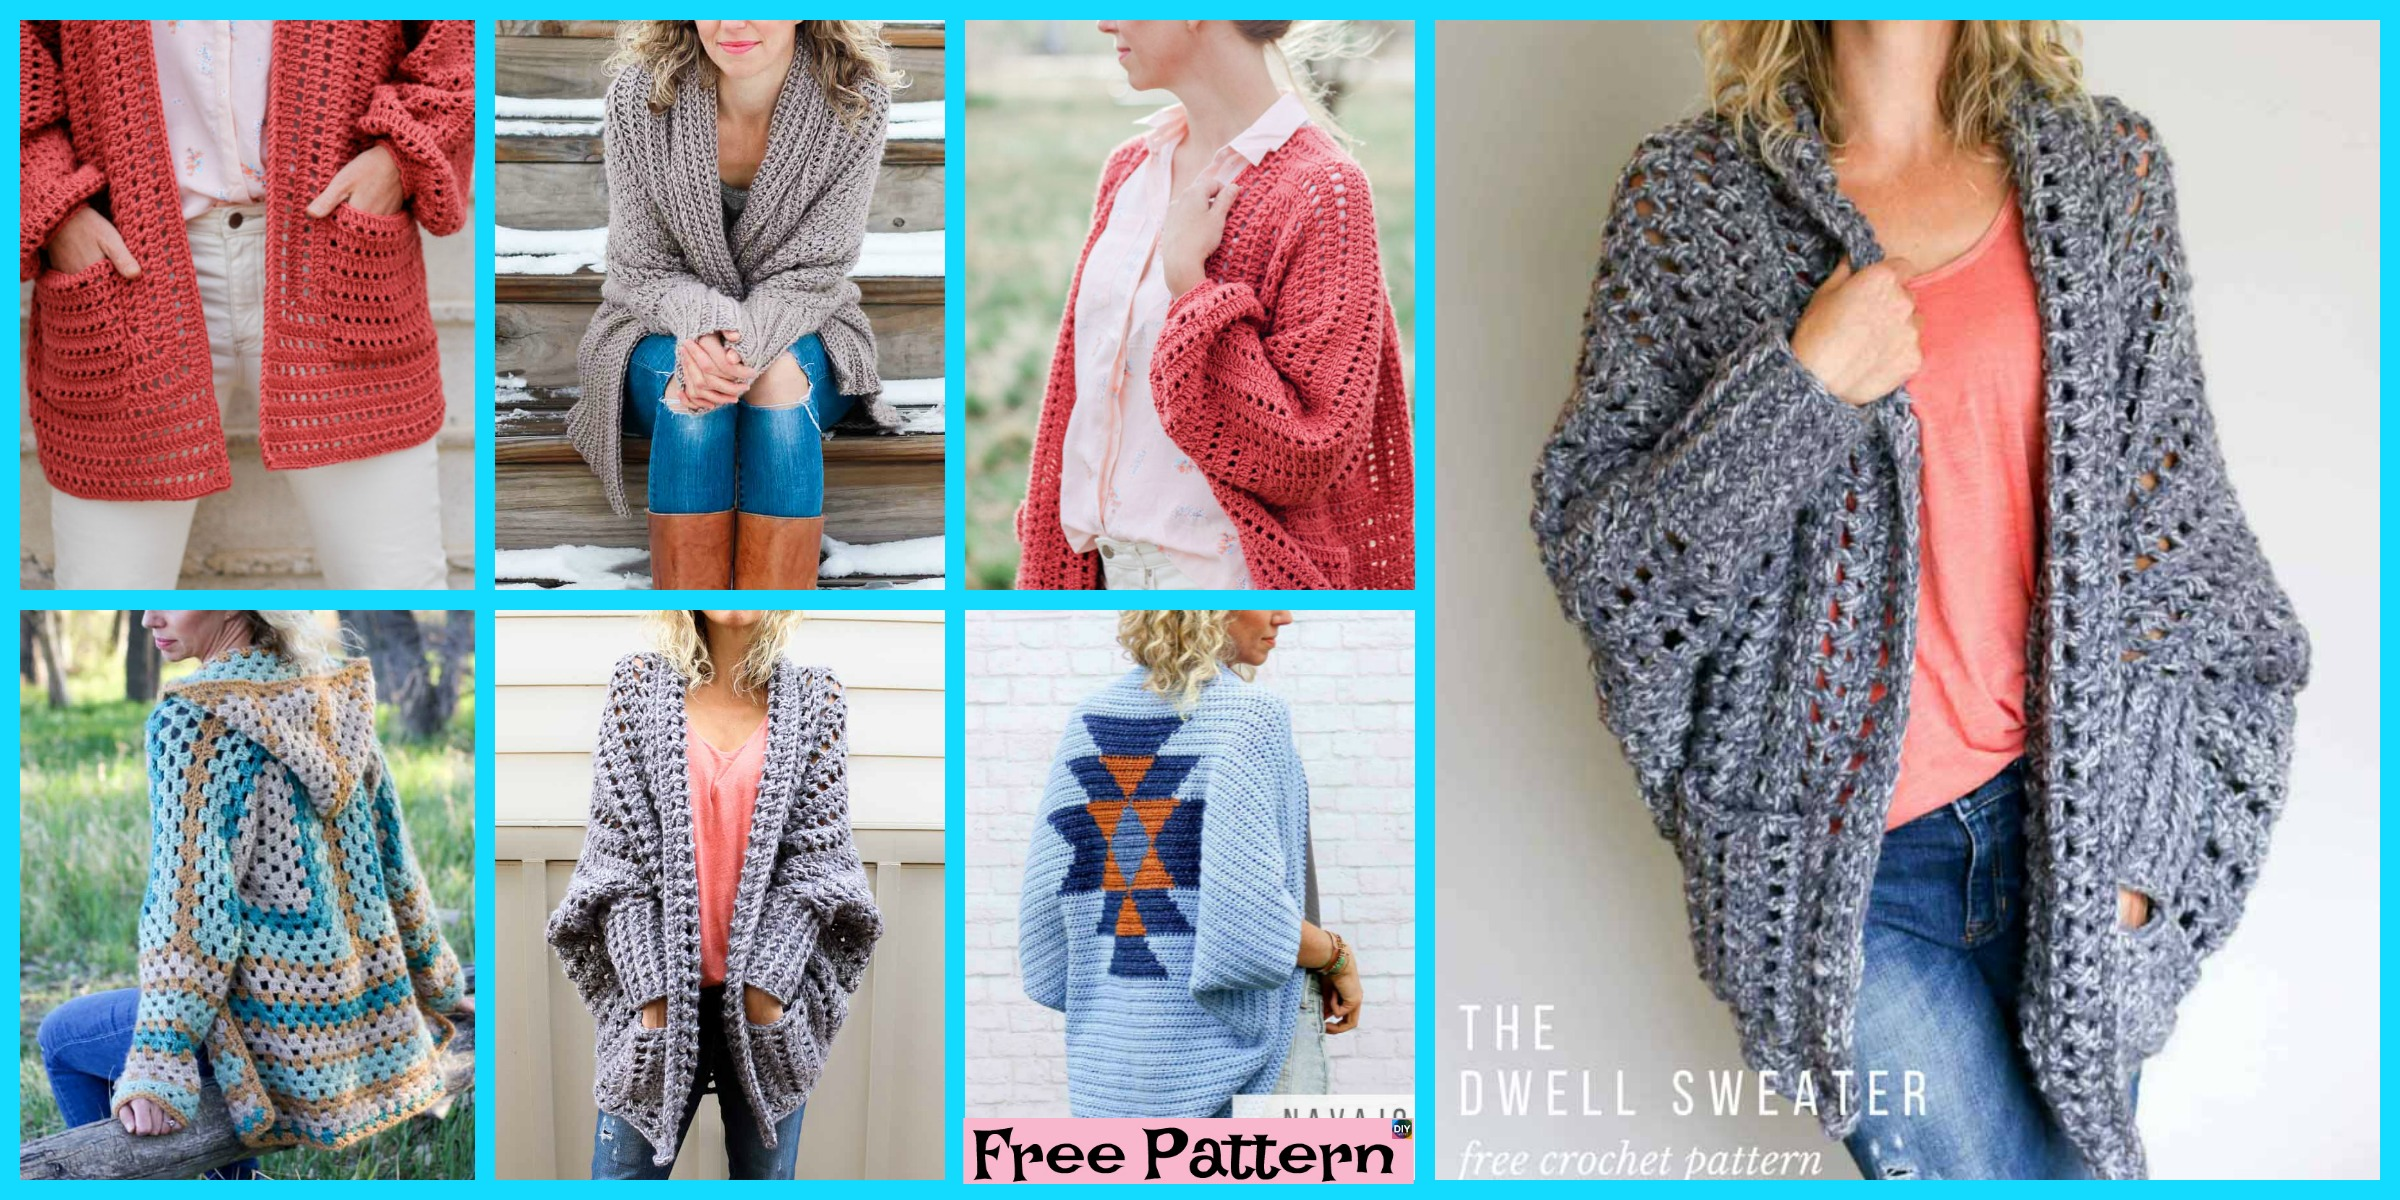 5 Beautiful Crochet Sweater Free Patterns